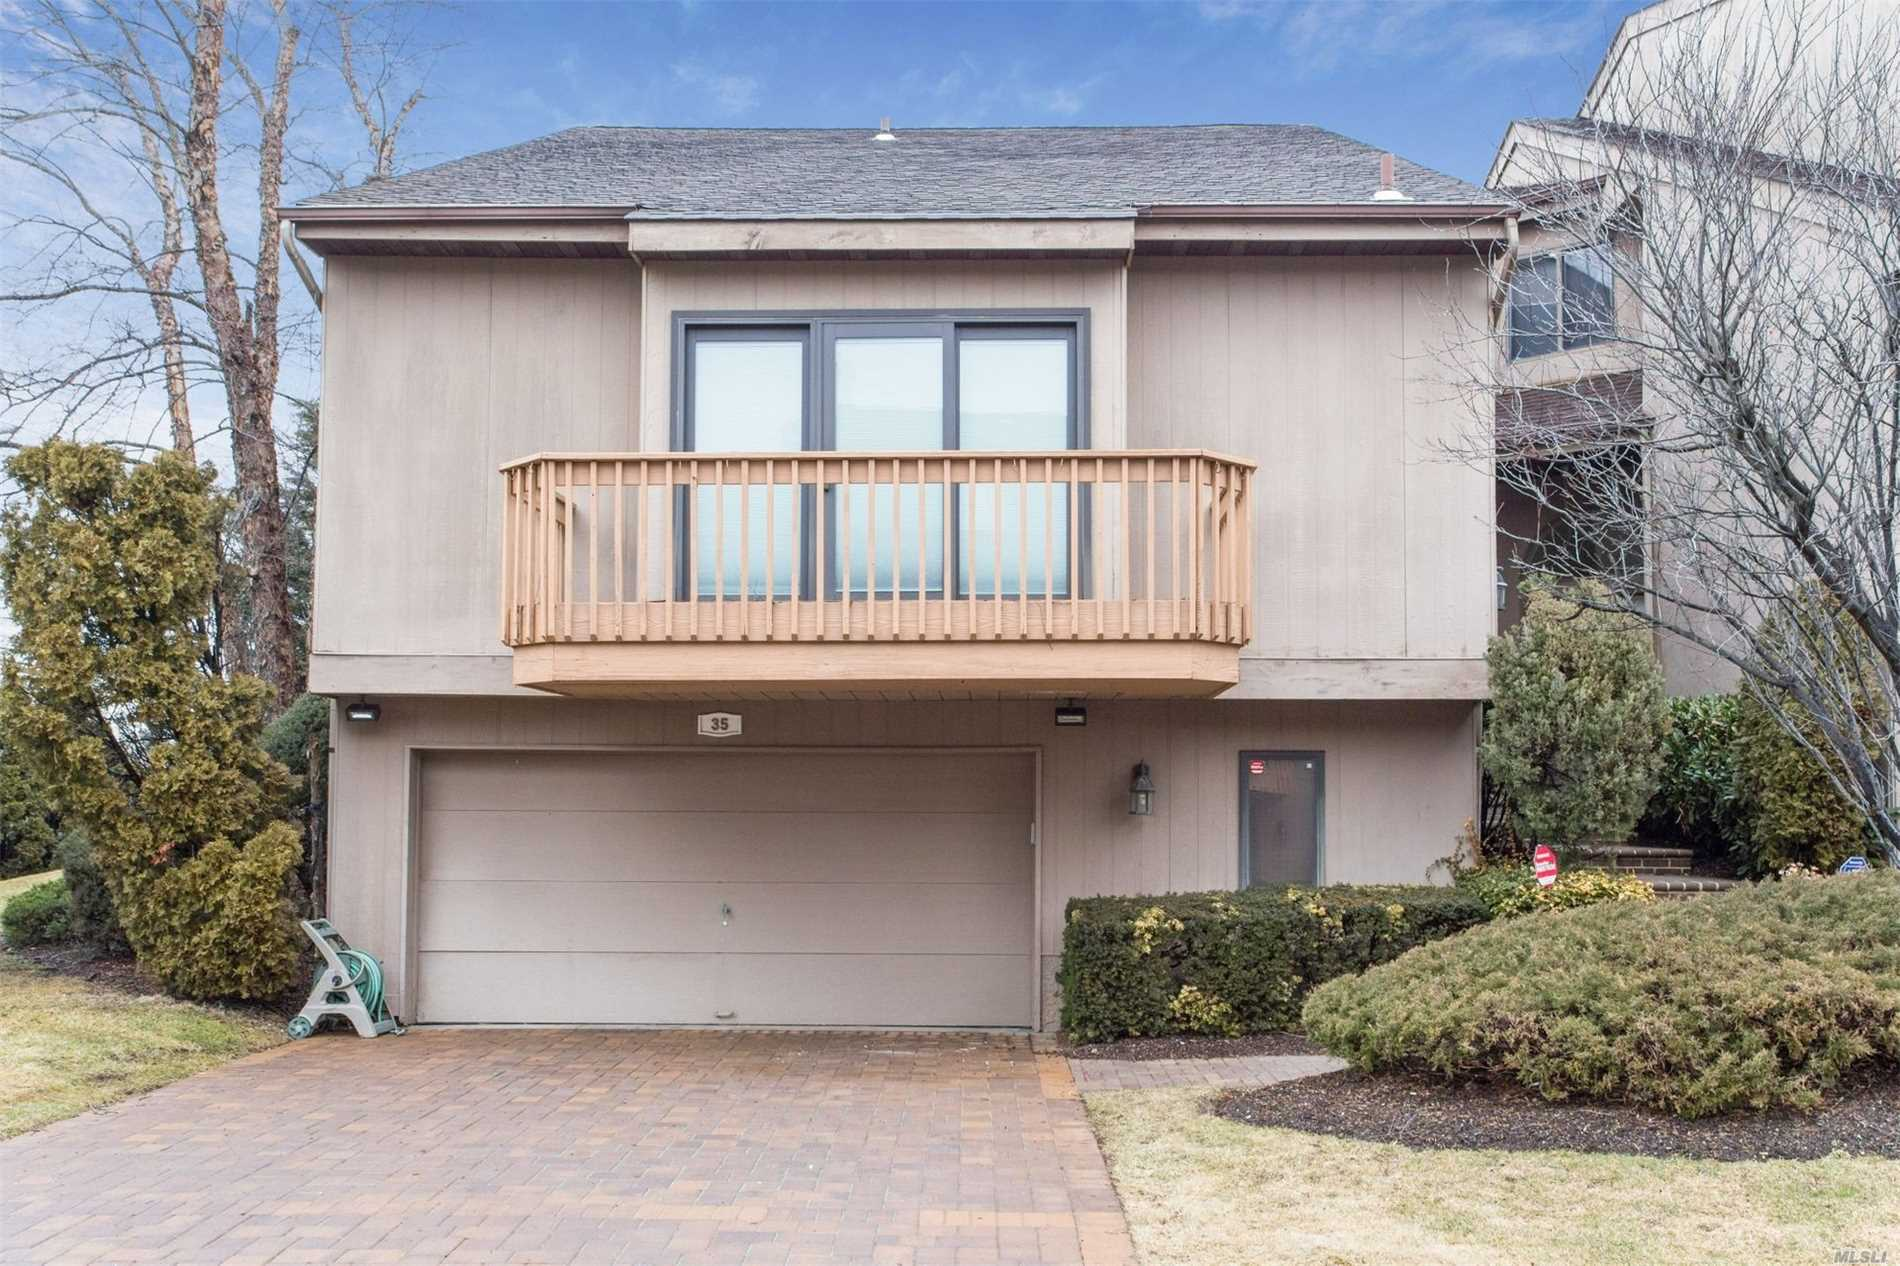 One Of The Largest Units In The Development With A High Ceiling For A Natural Light. Further Into The Complex This Unit Boasts Updated Bathrooms And Kitchen, Wood Floors, Lots Of Custom Made Closet, A Two Car Garage And Much More.